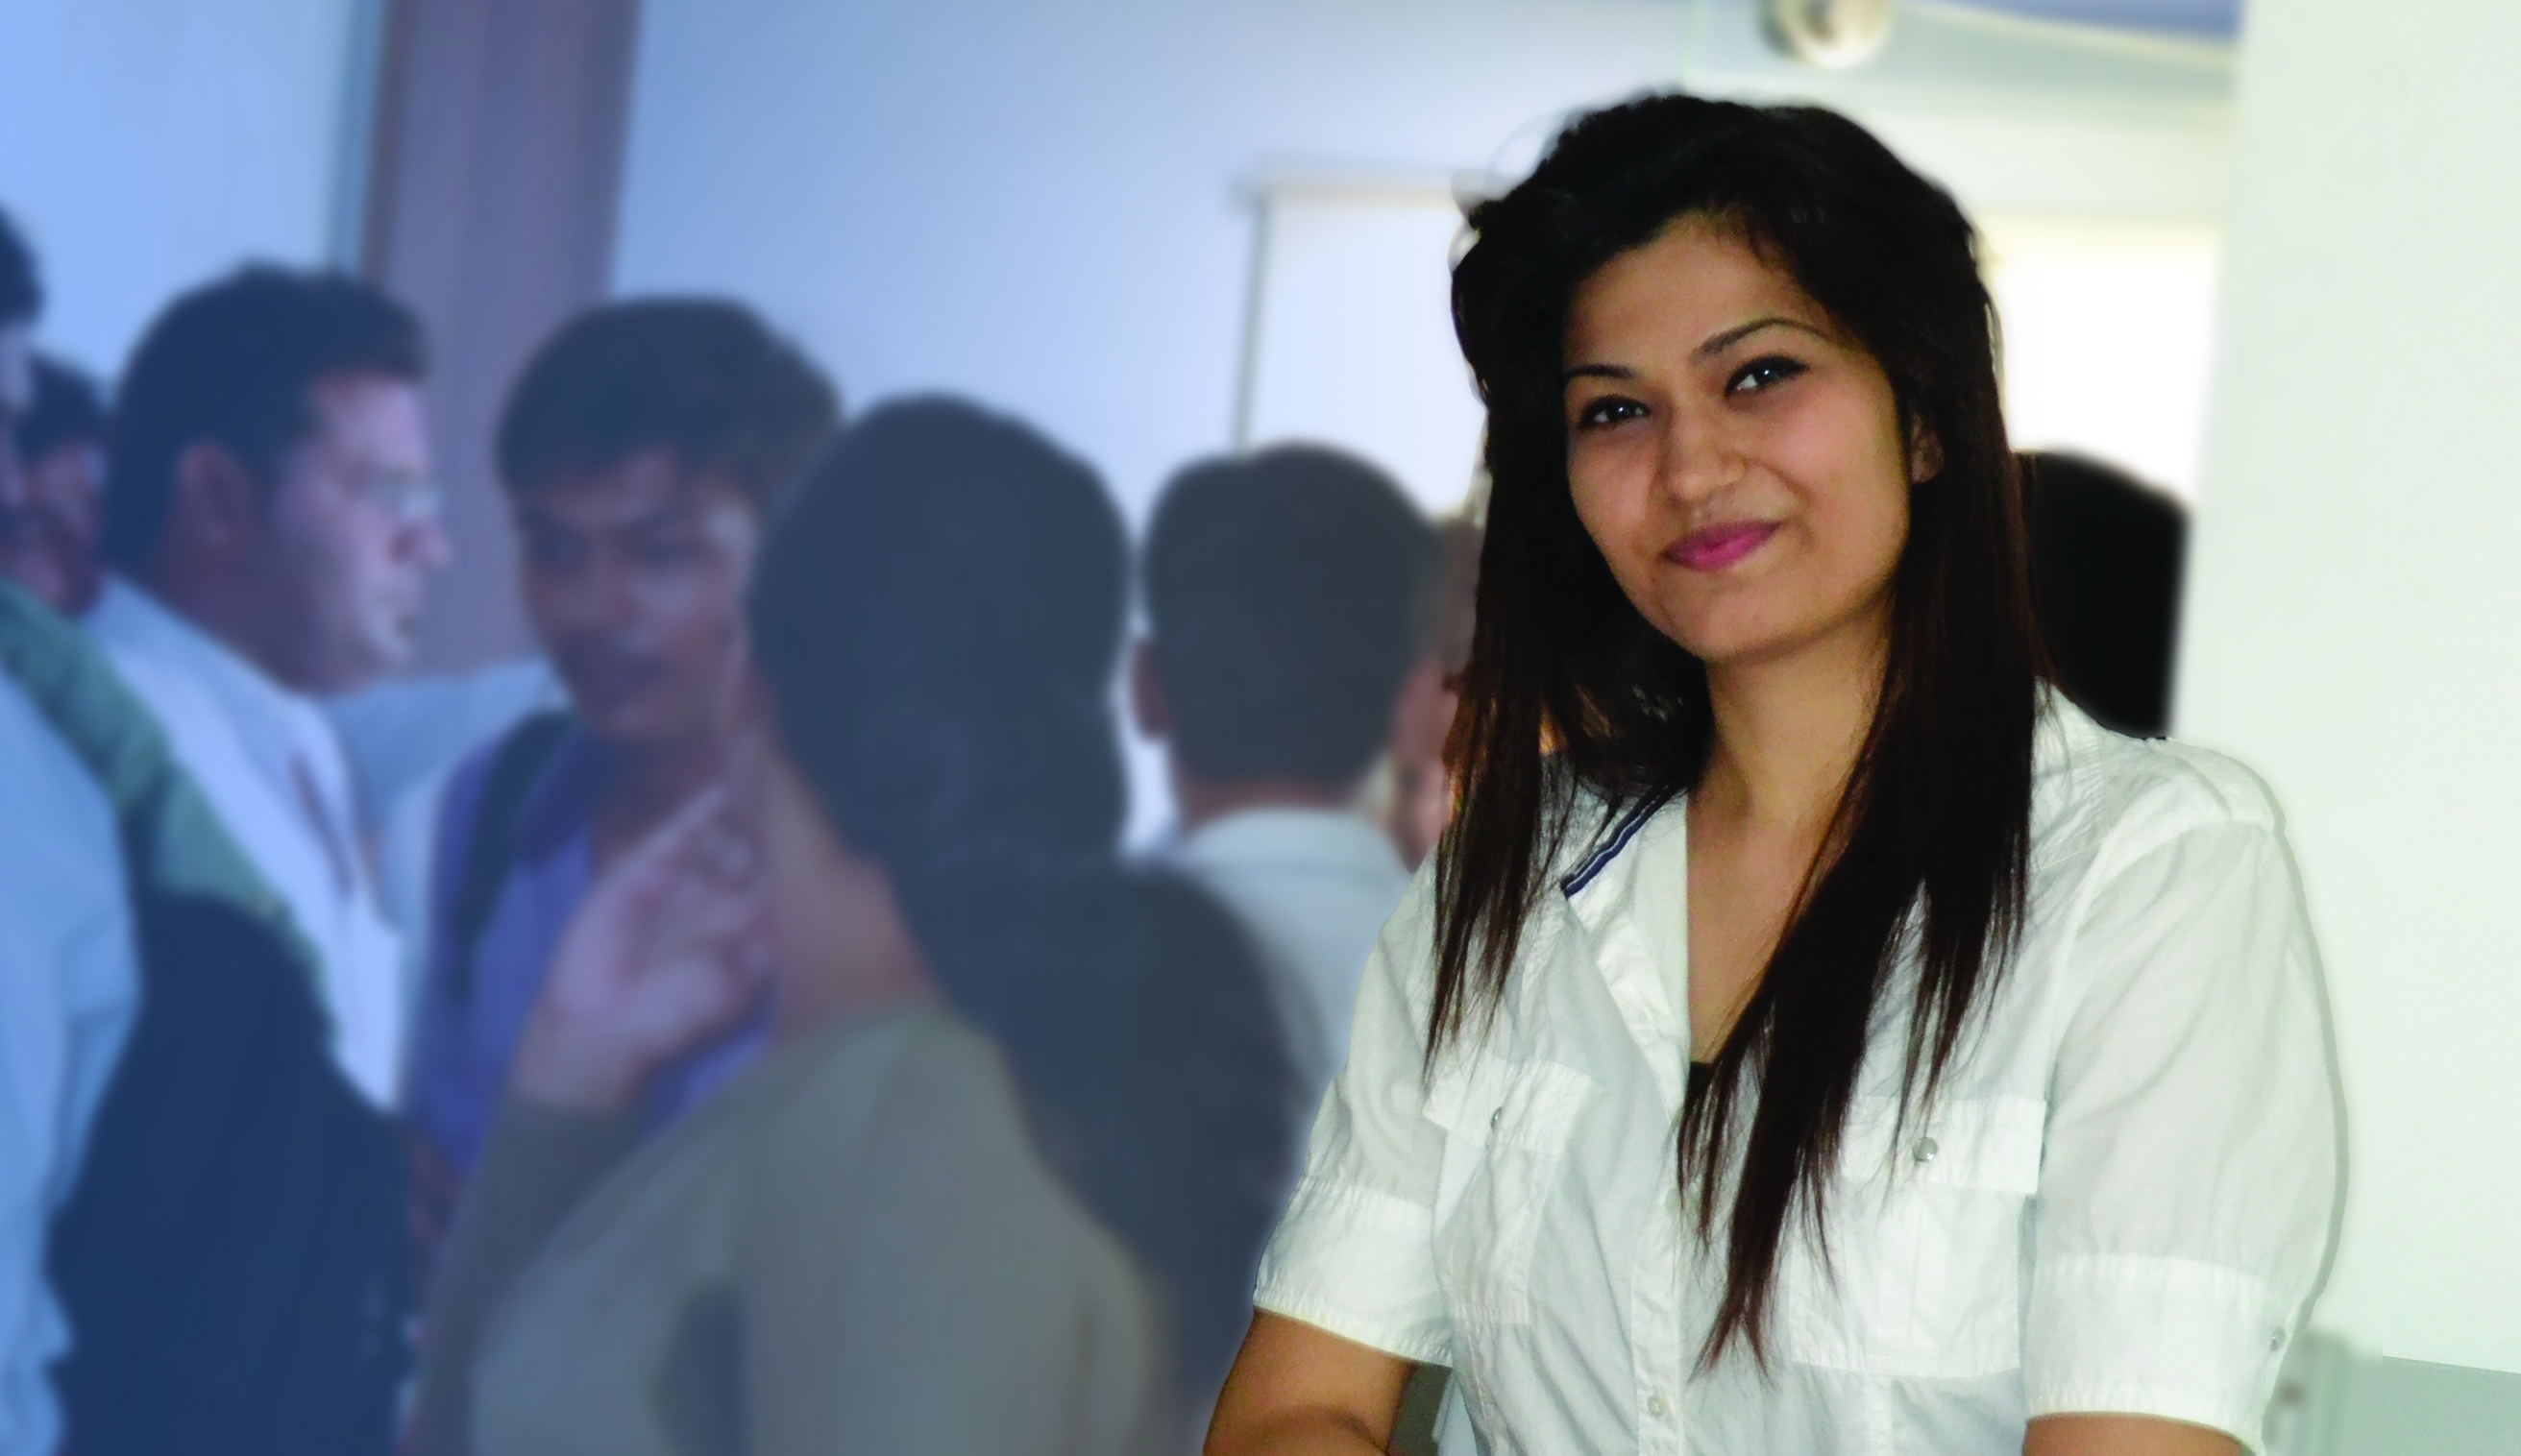 Anamika is a student of Narayana Business School, Ahmedabad